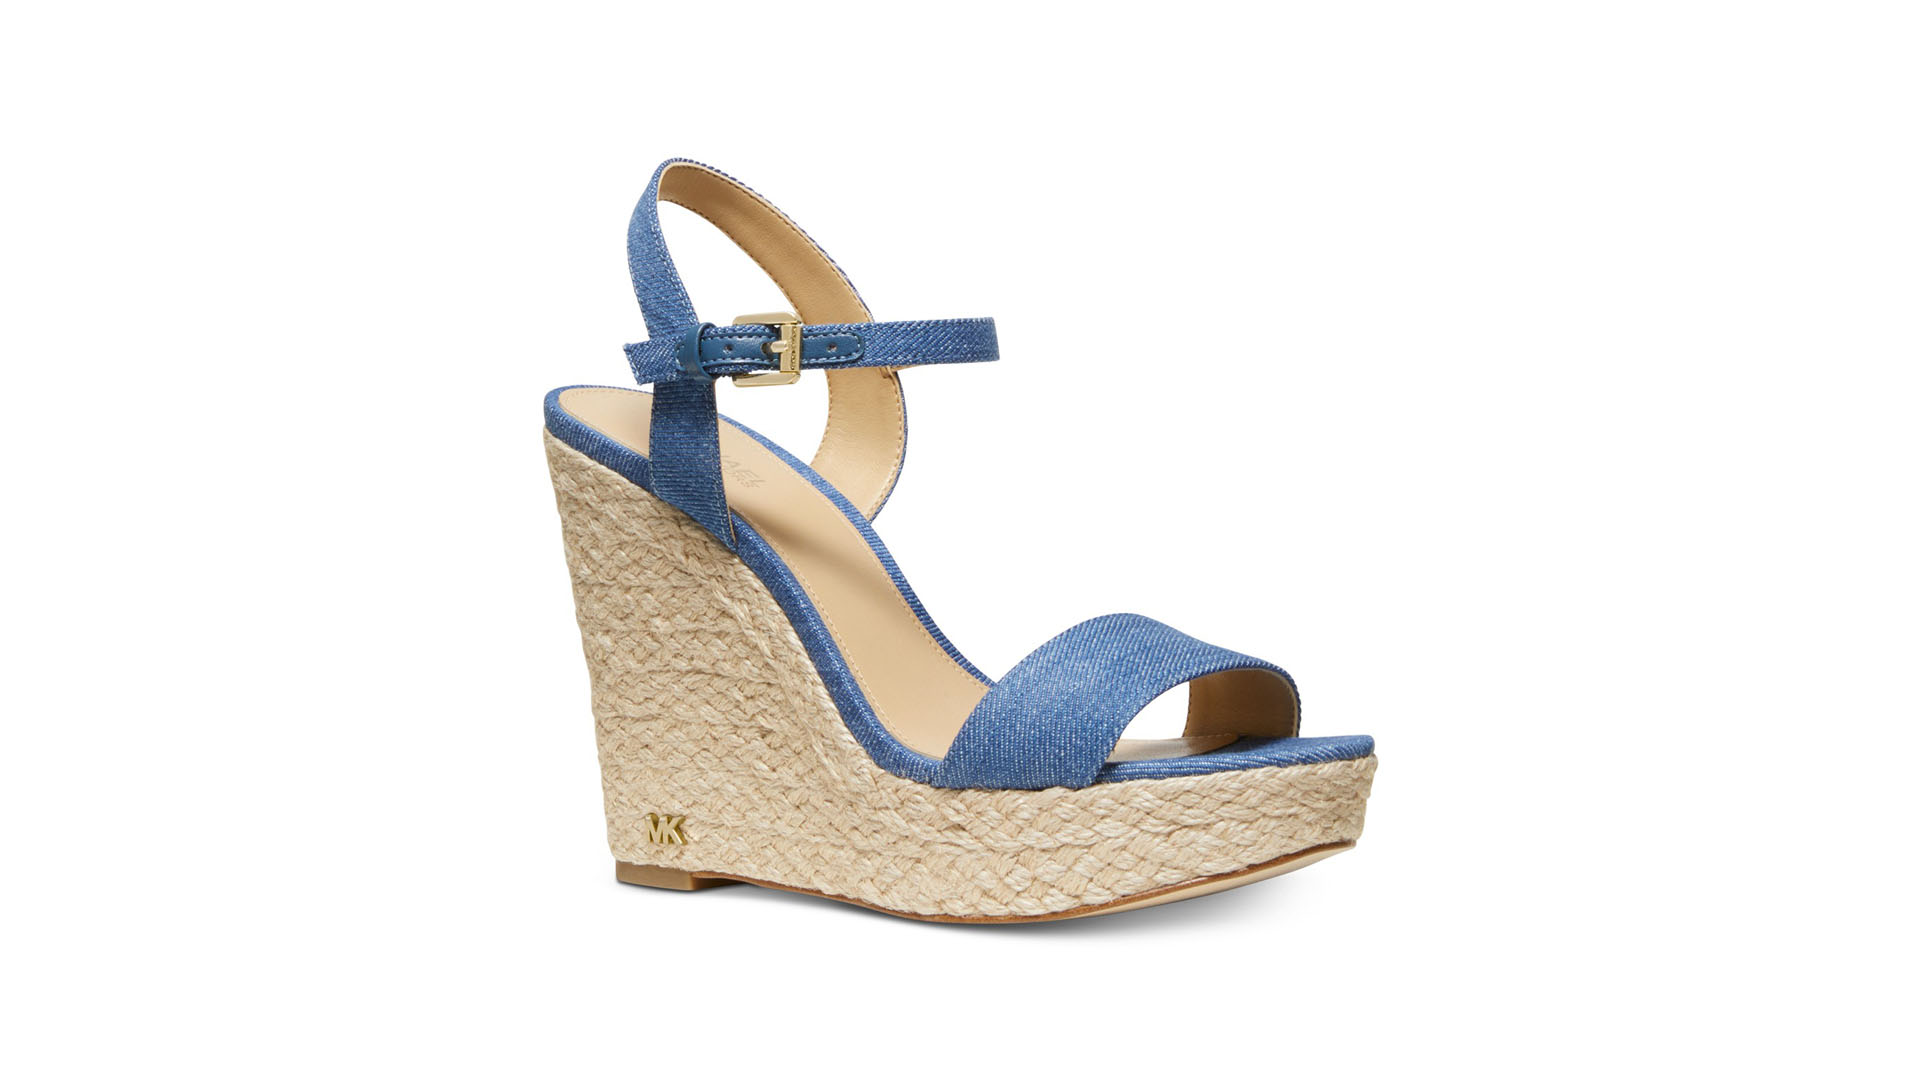 Sandals 25% OFF Is One Of The Best Macy's Deals To Mother's Day